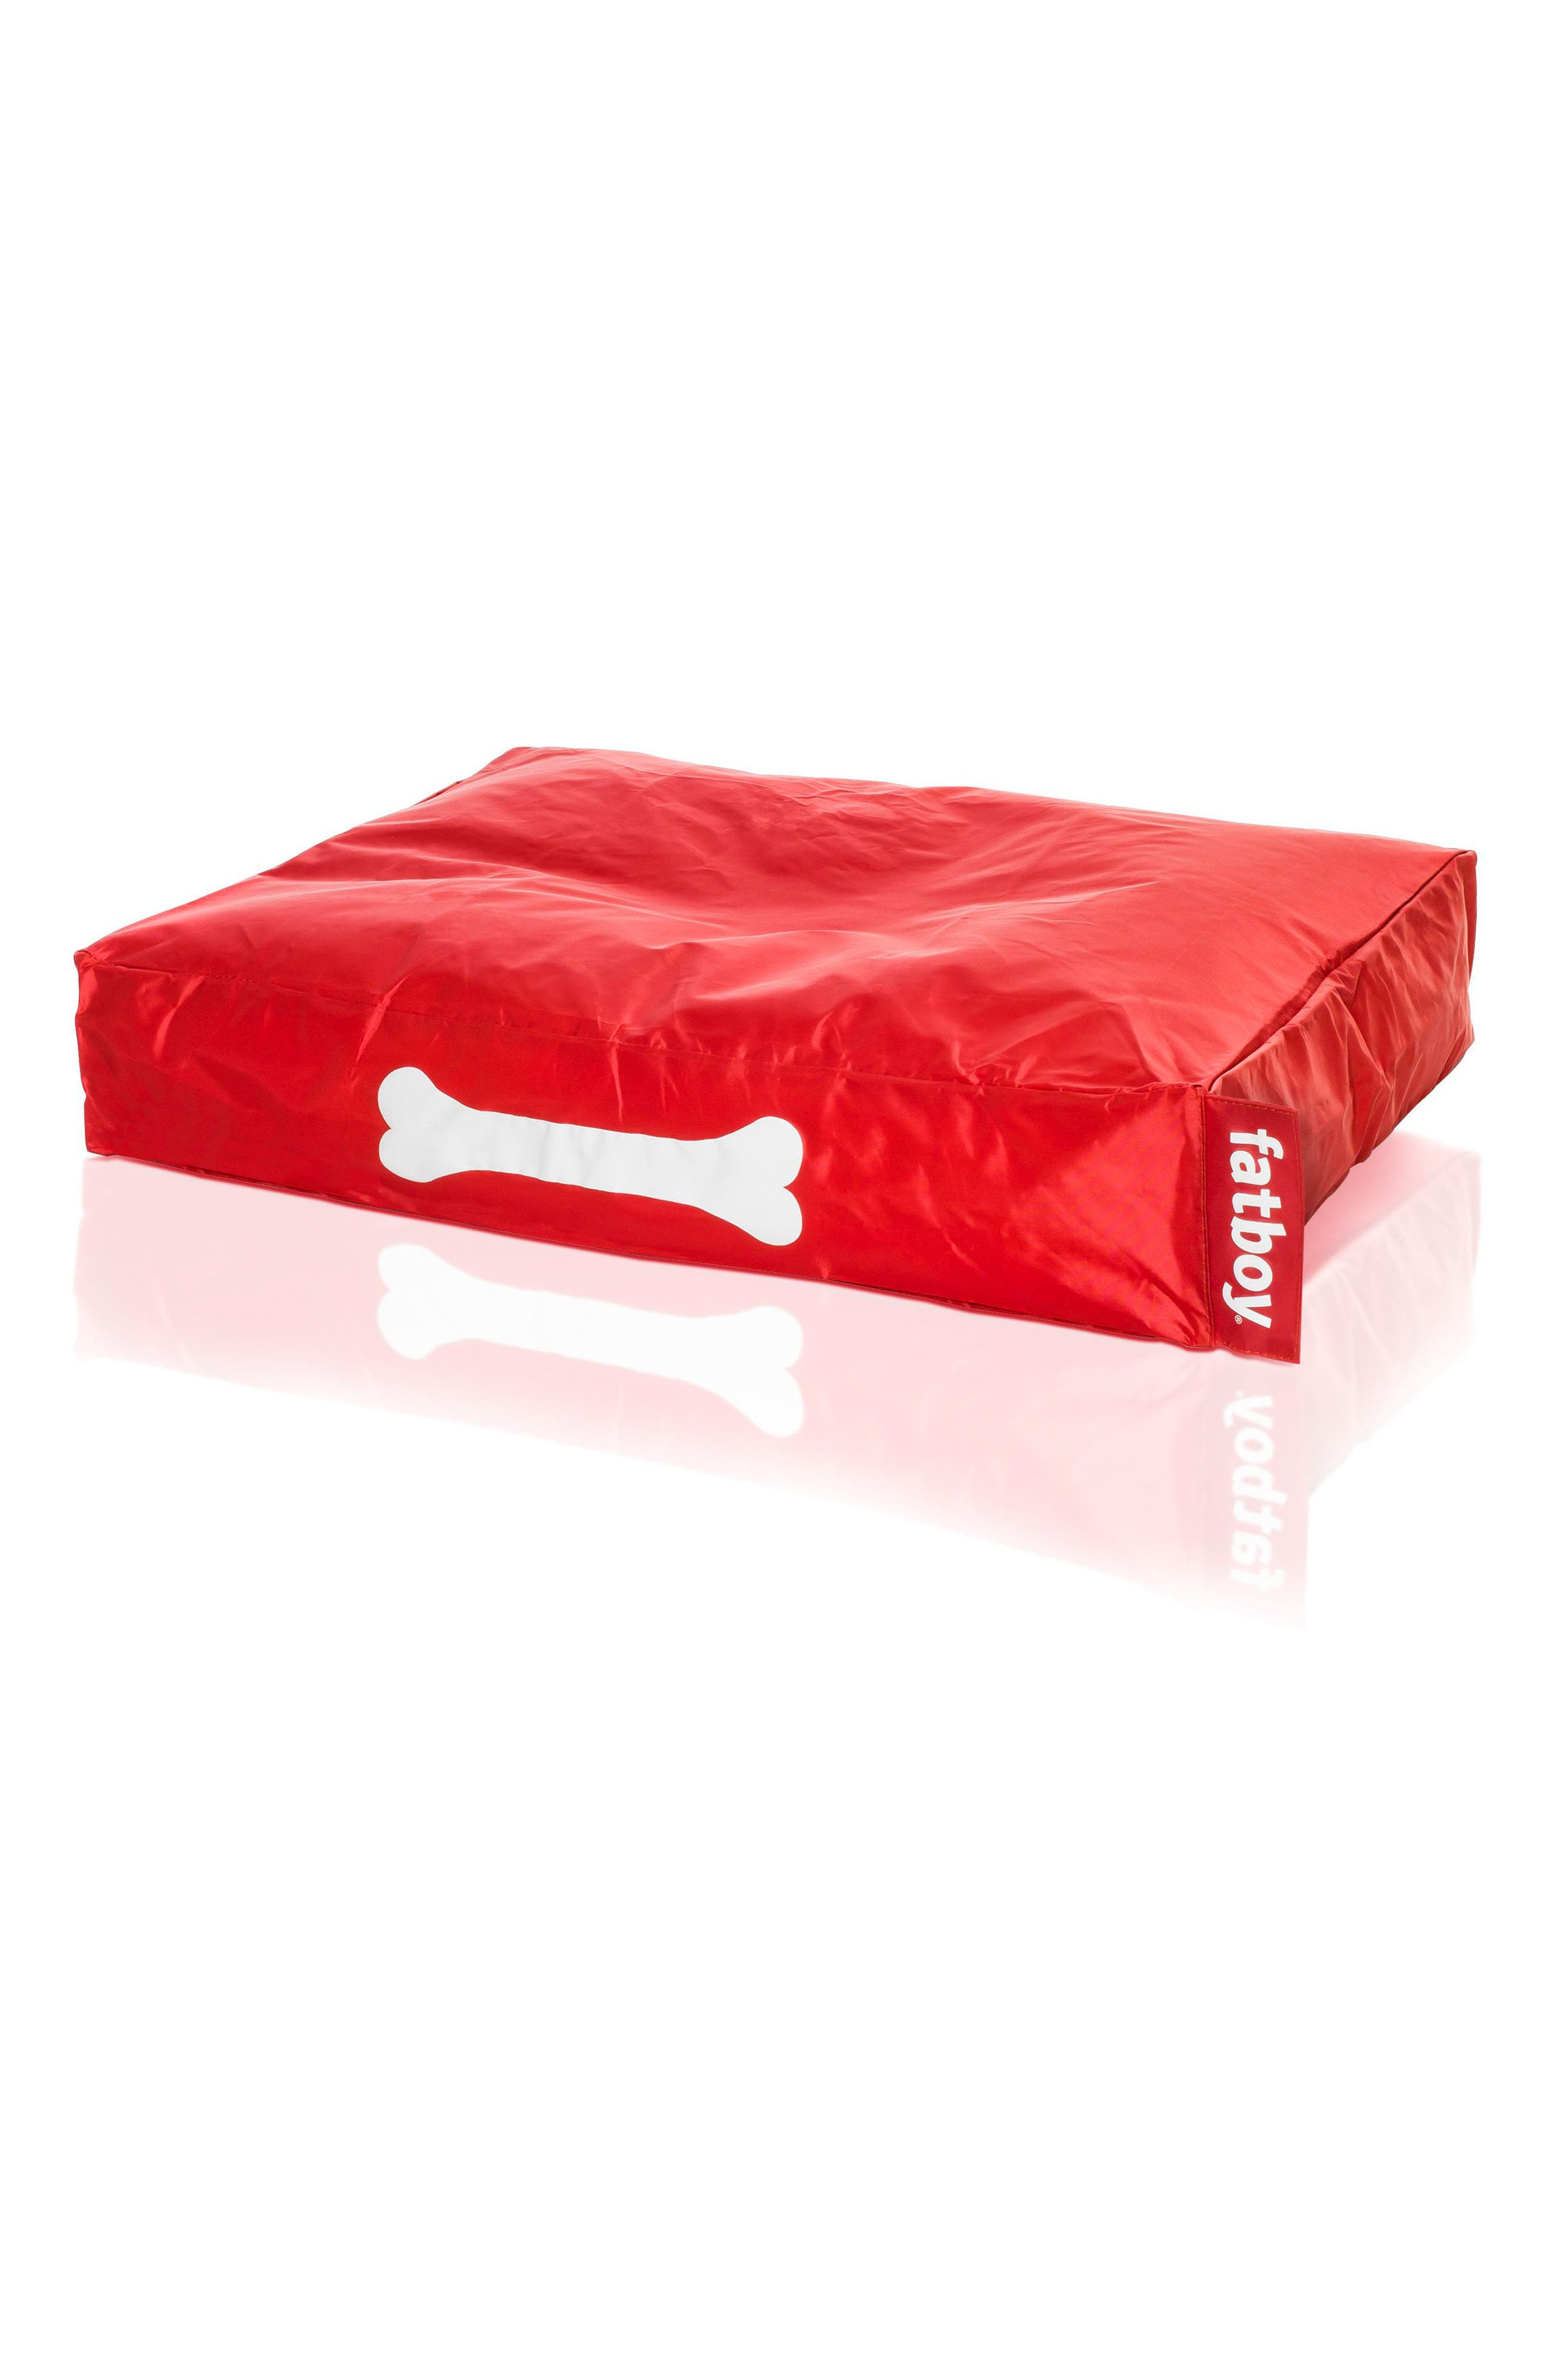 Fatboy Doggielounge Pet Bed